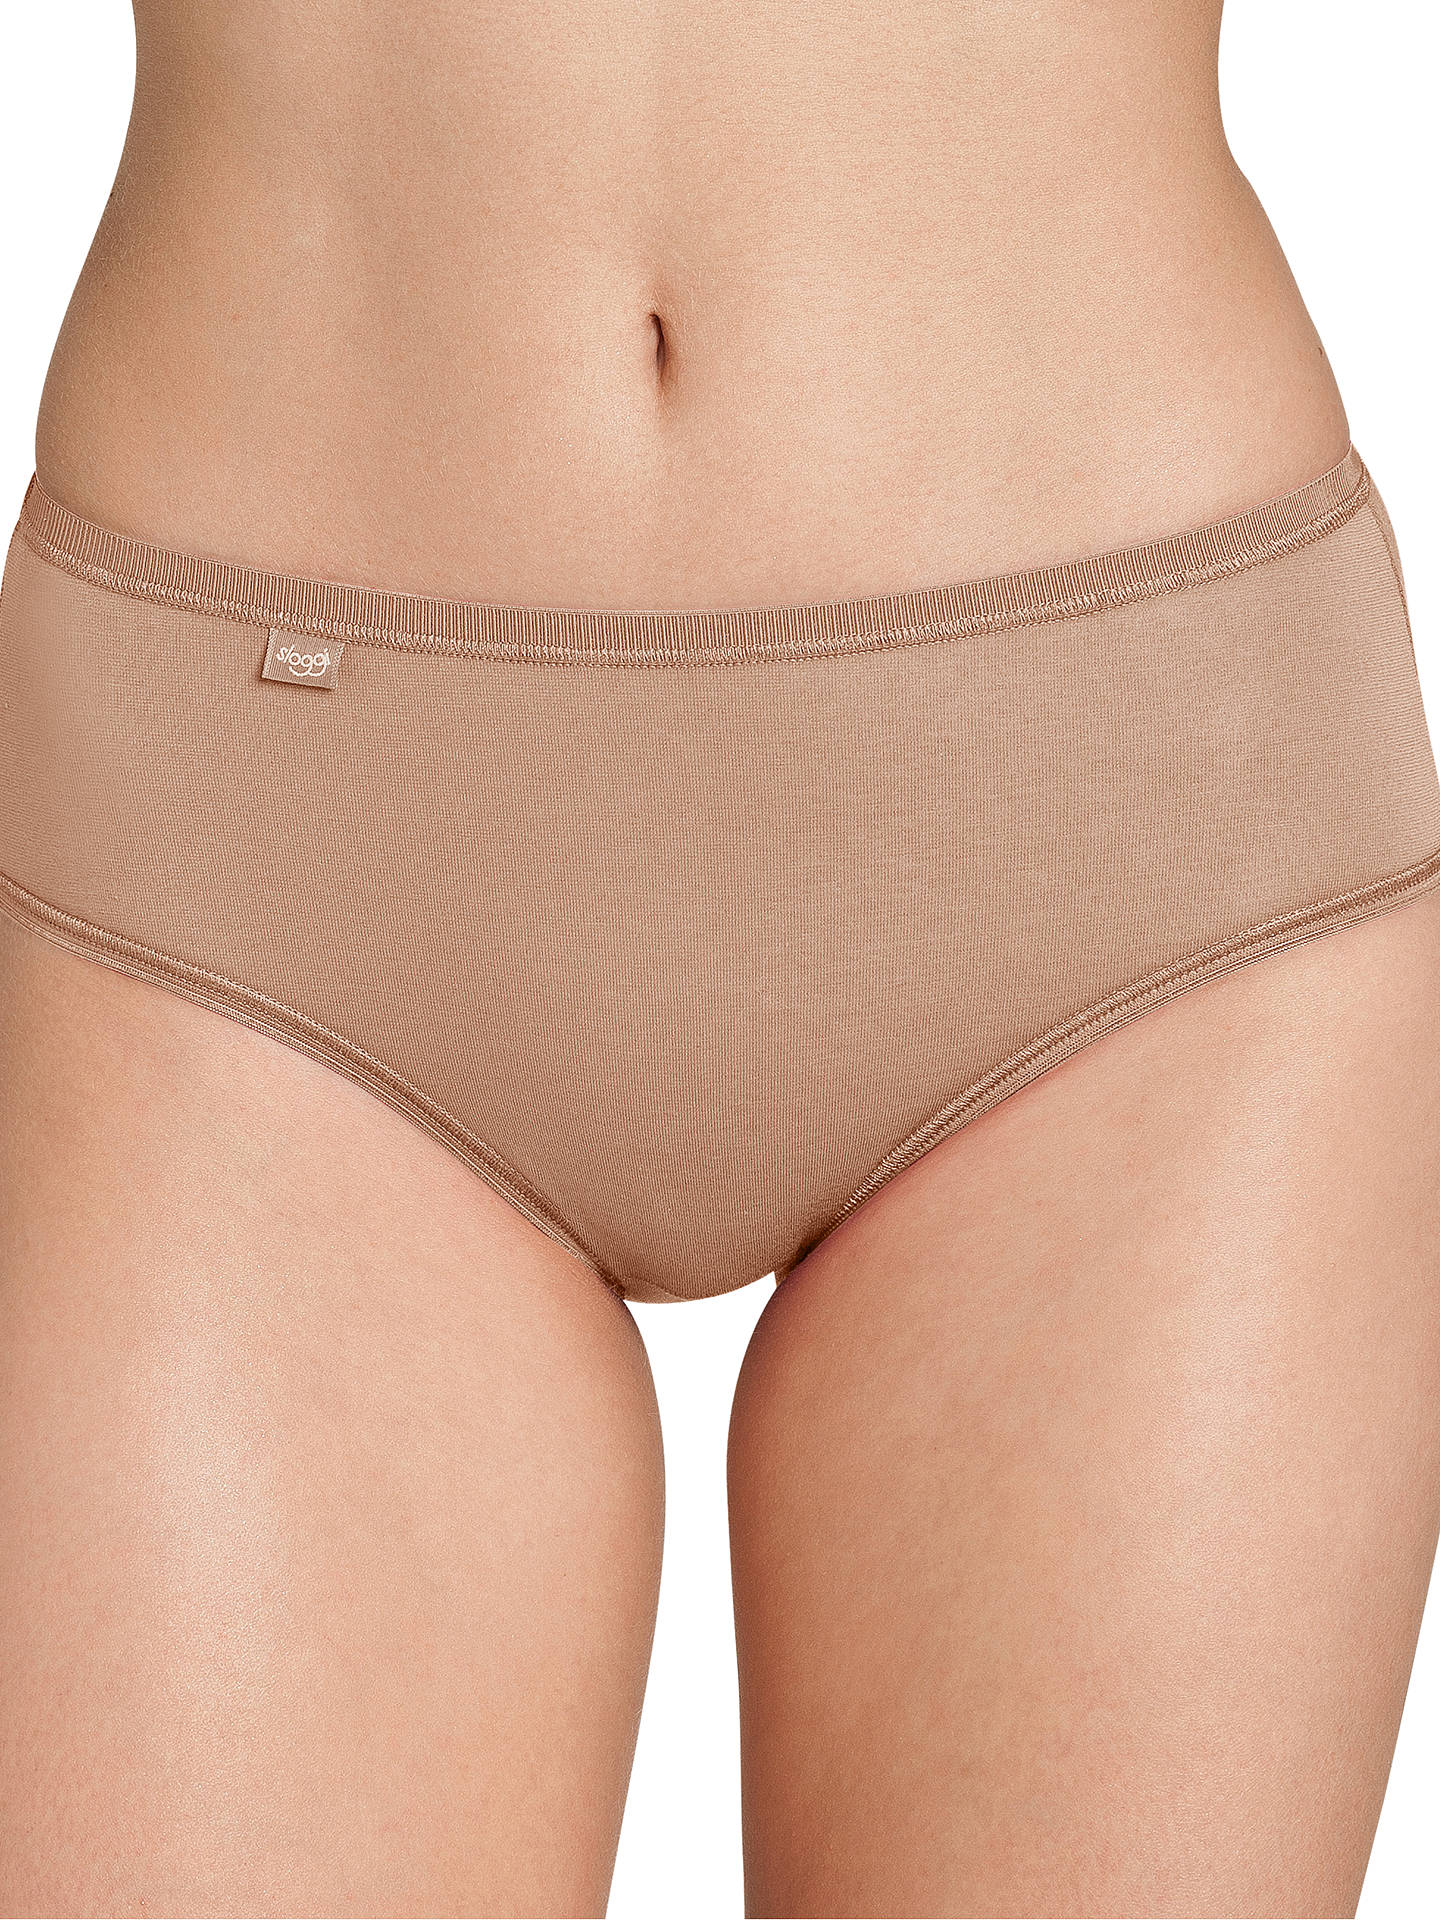 Buysloggi EverNew Midi Briefs, Nude, 10 Online at johnlewis.com